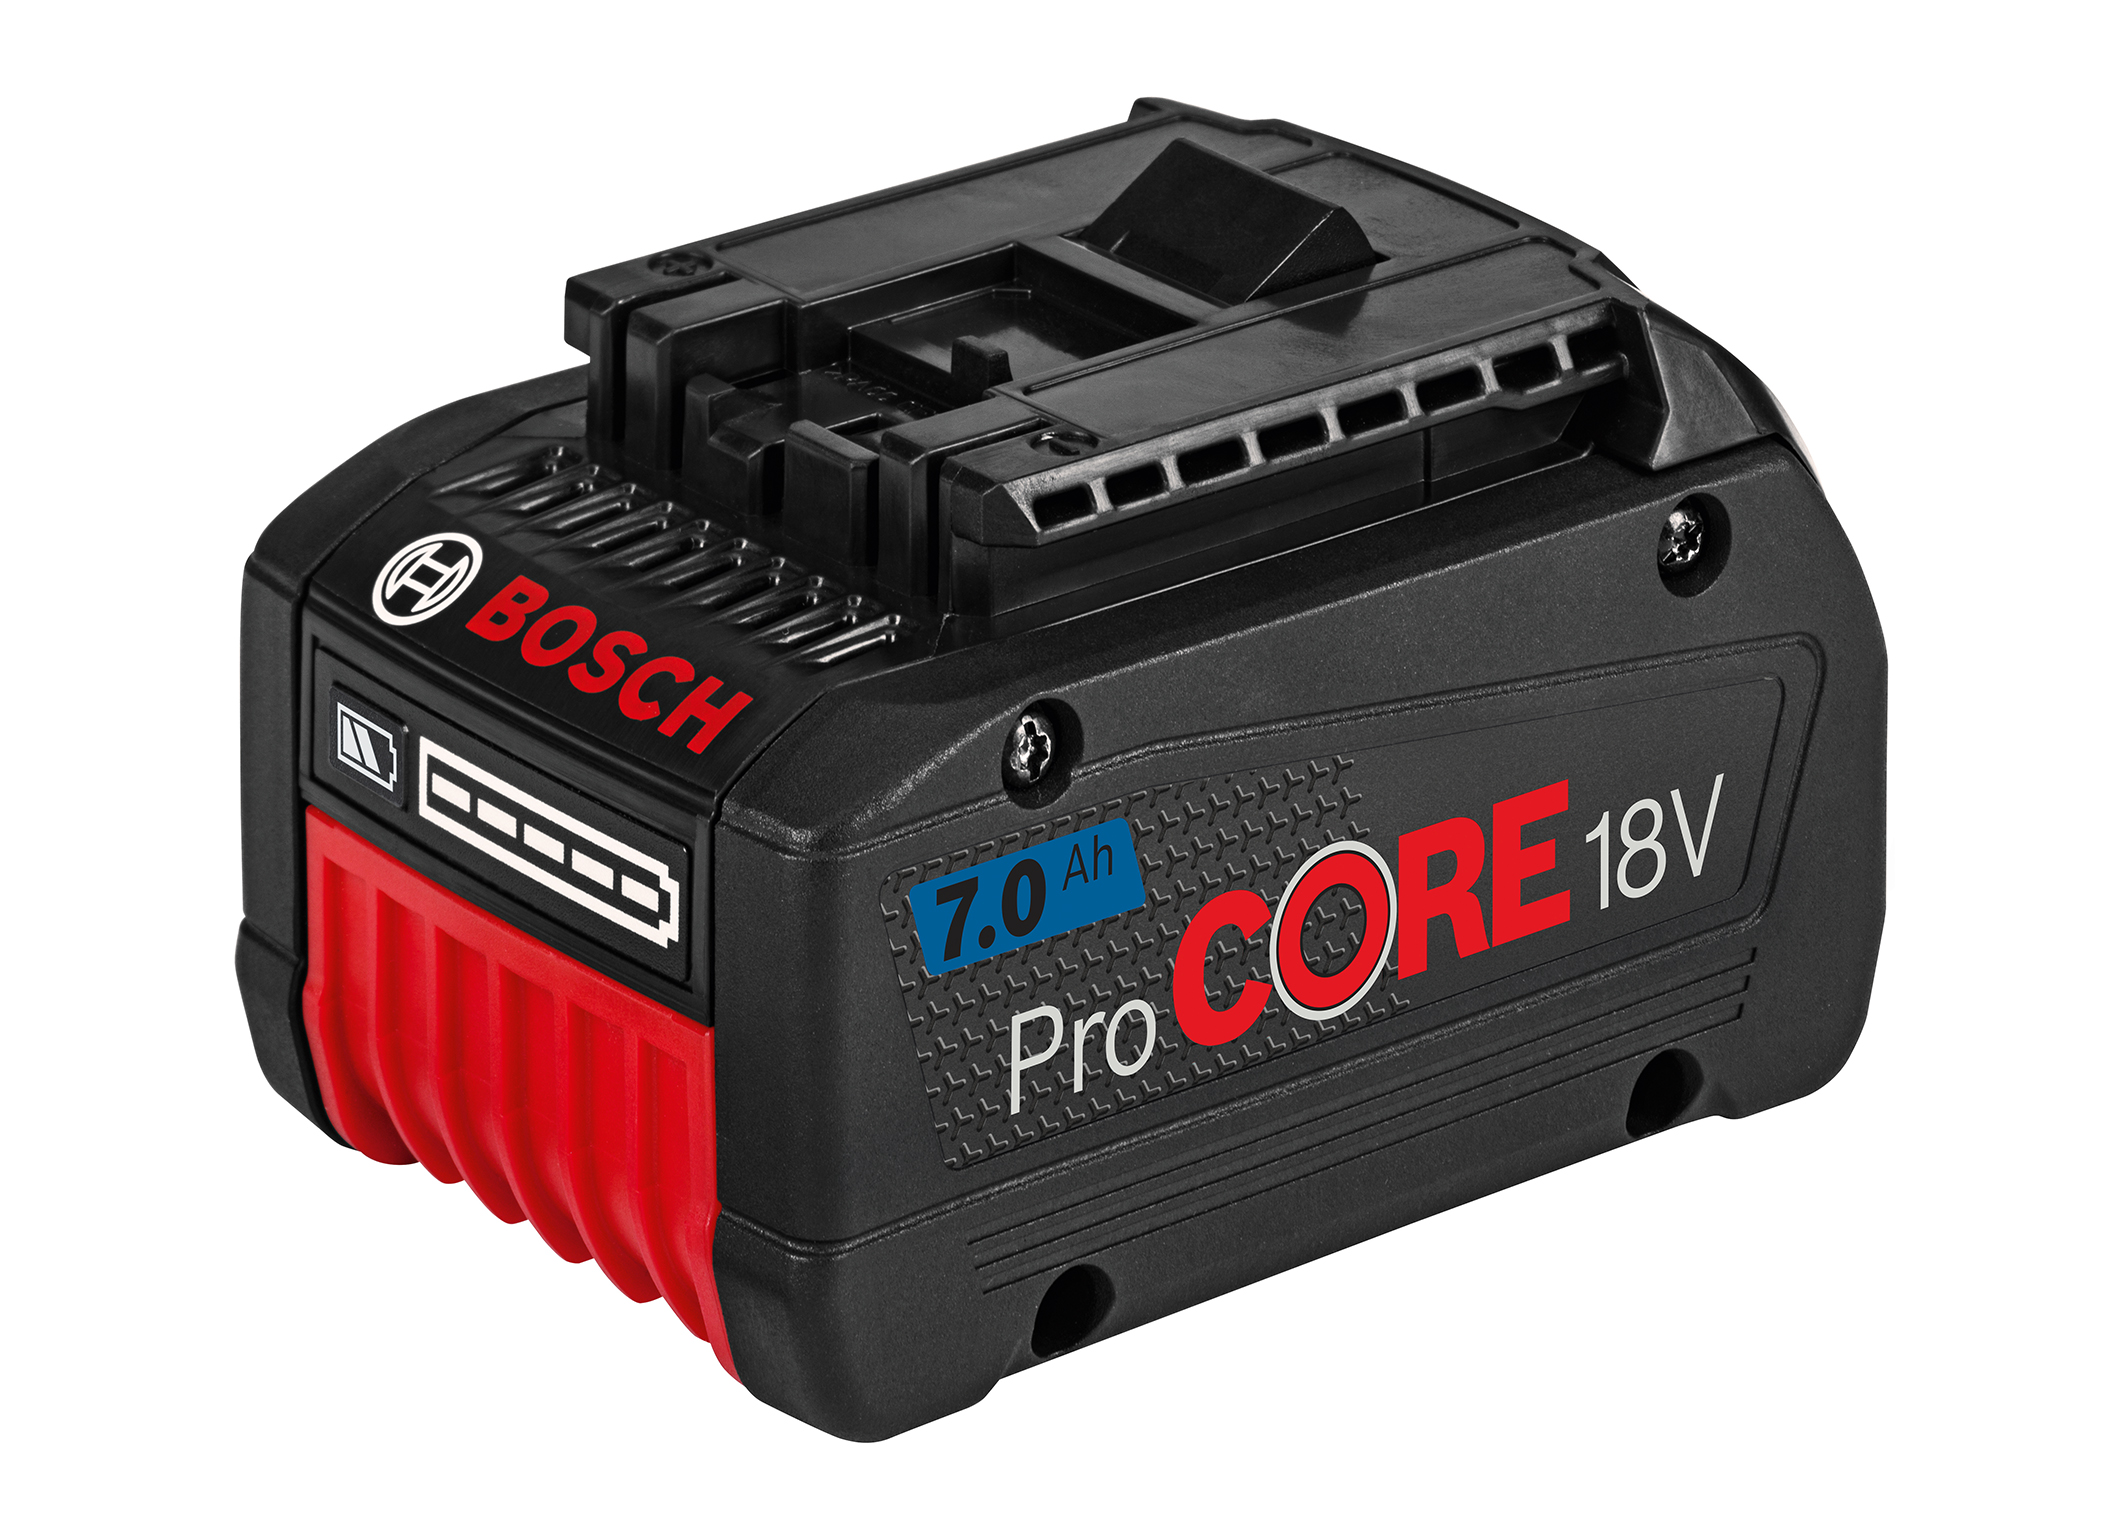 More power for professionals: Bosch ProCore18V 7.0 Ah high-performance battery